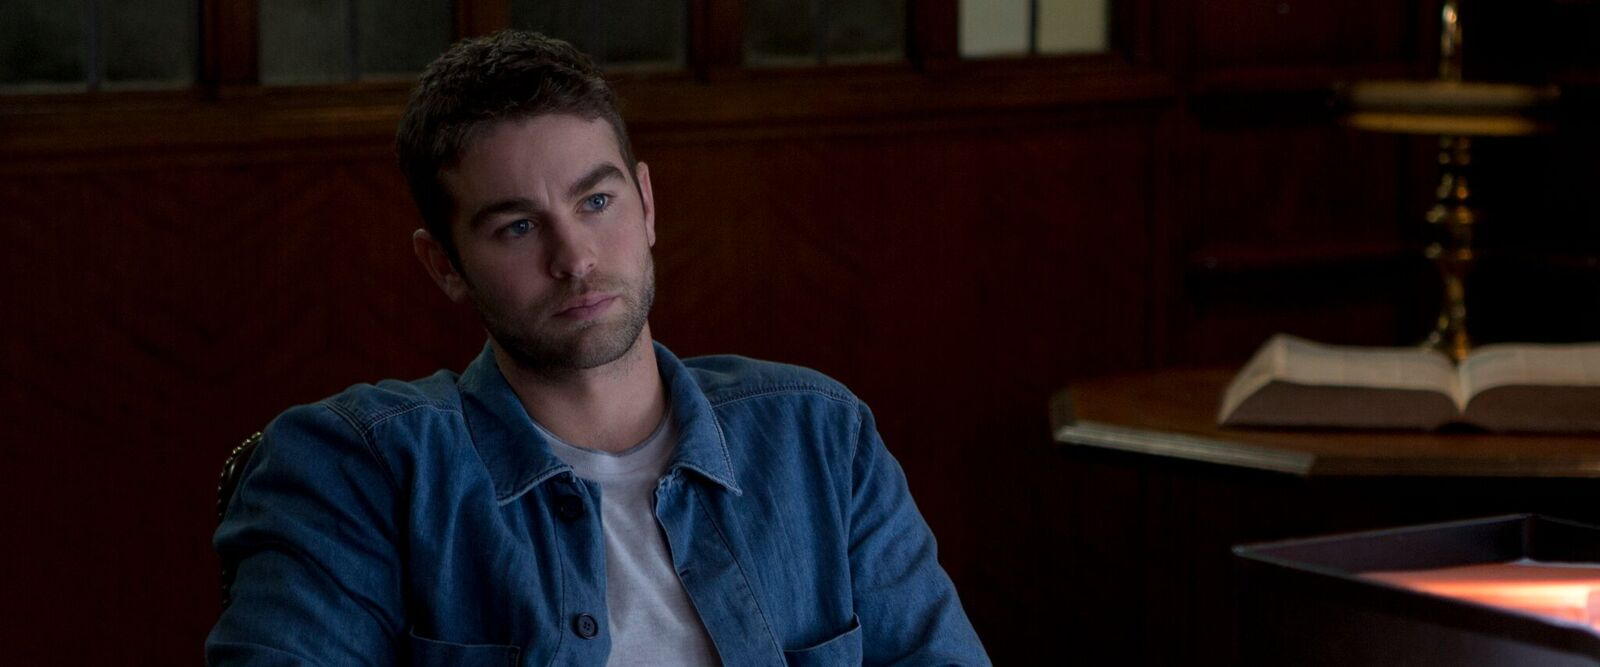 Chace Crawford in Eloise